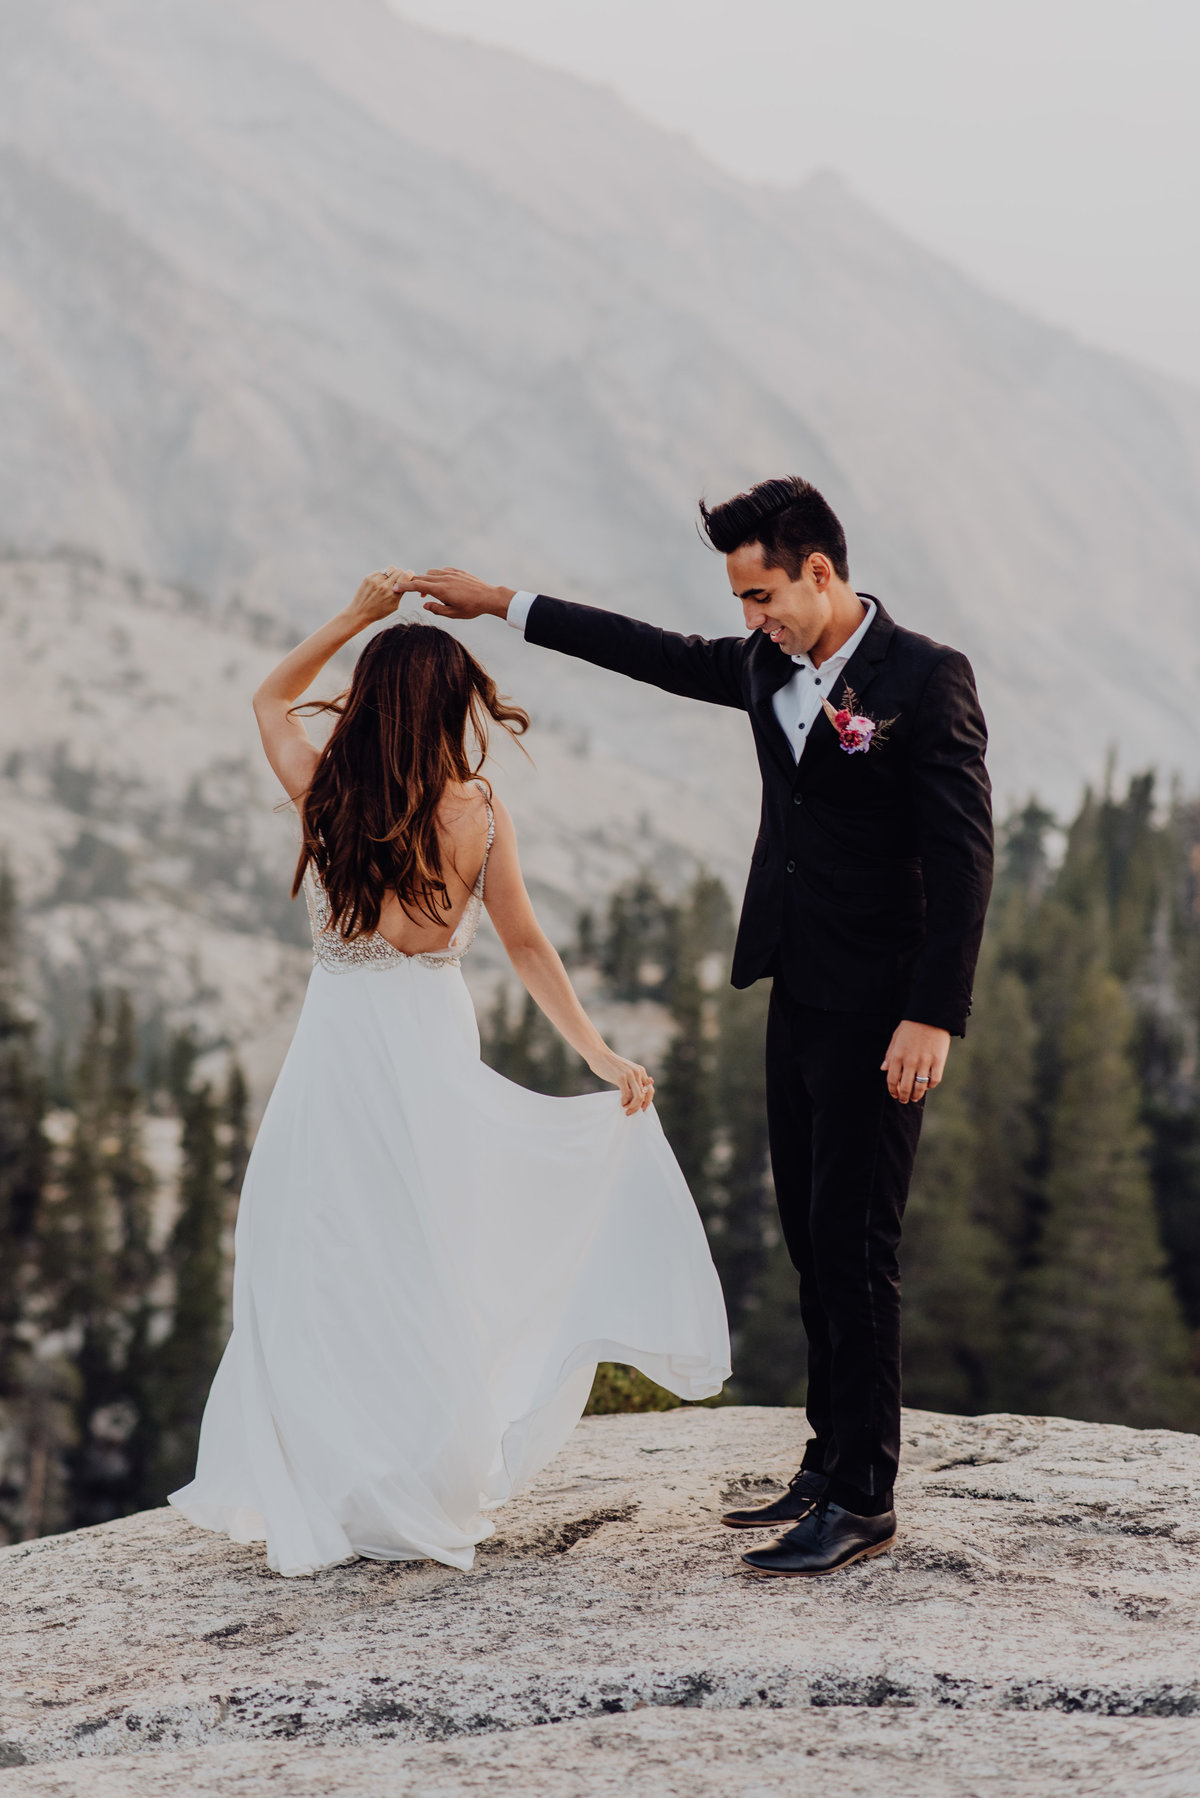 Sunshine_Shannon_Photography_Yosemite_romantic_elopement-4529